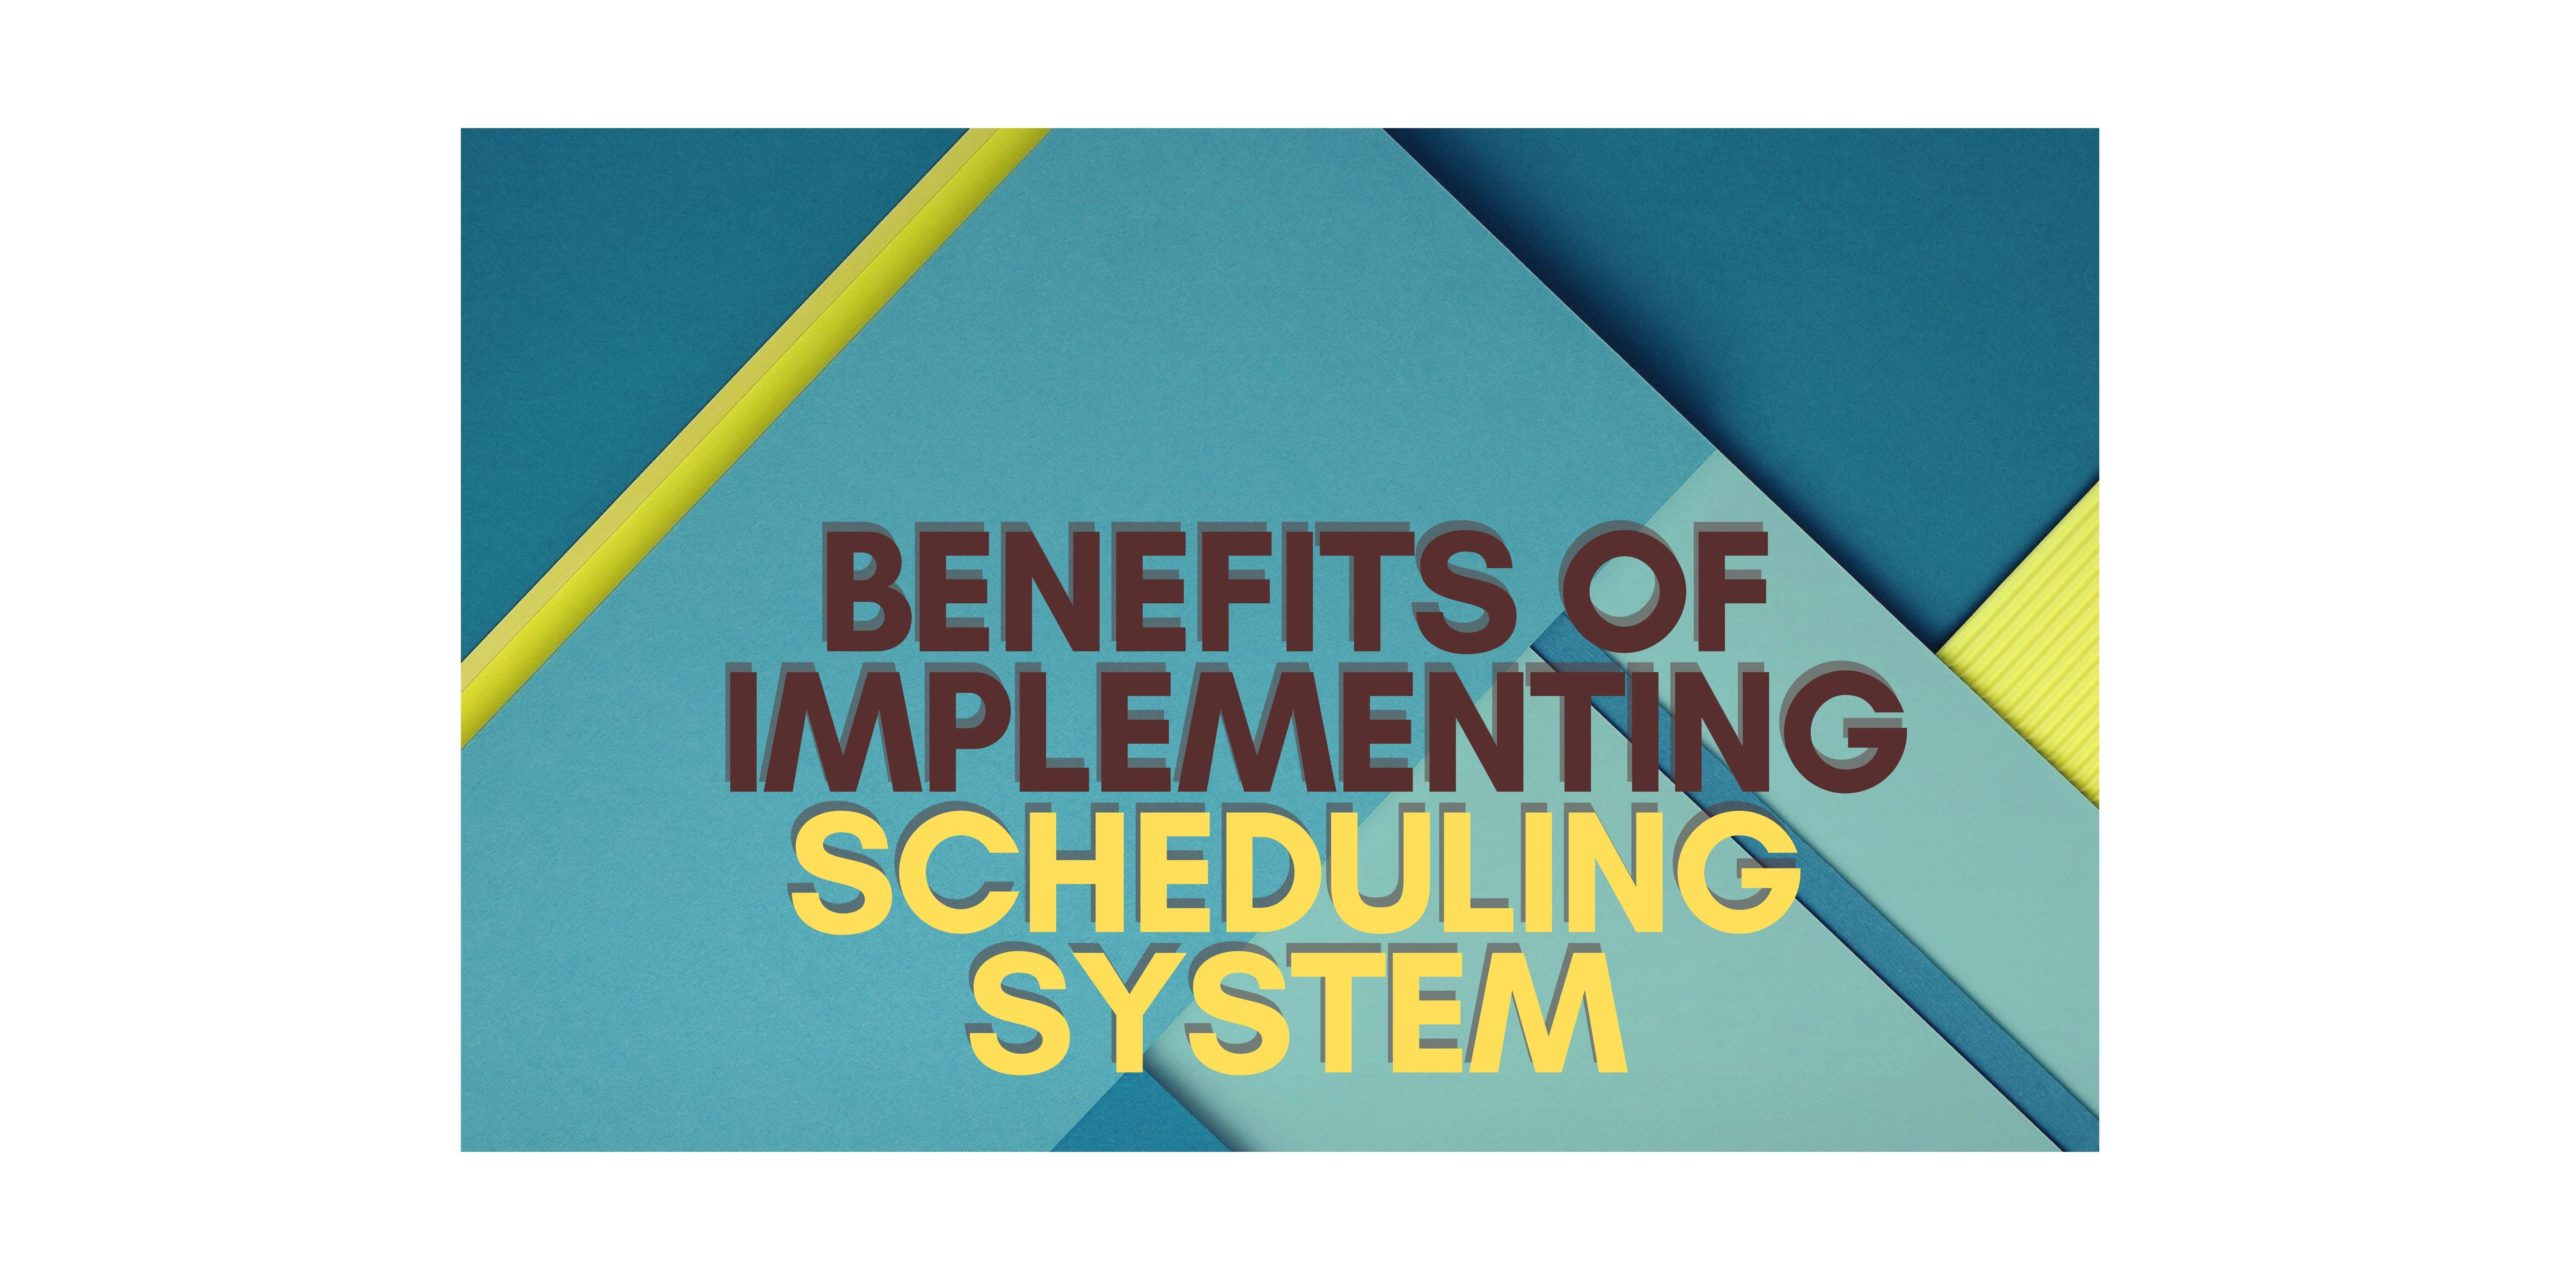 Benefits of Implementing a Scheduling System